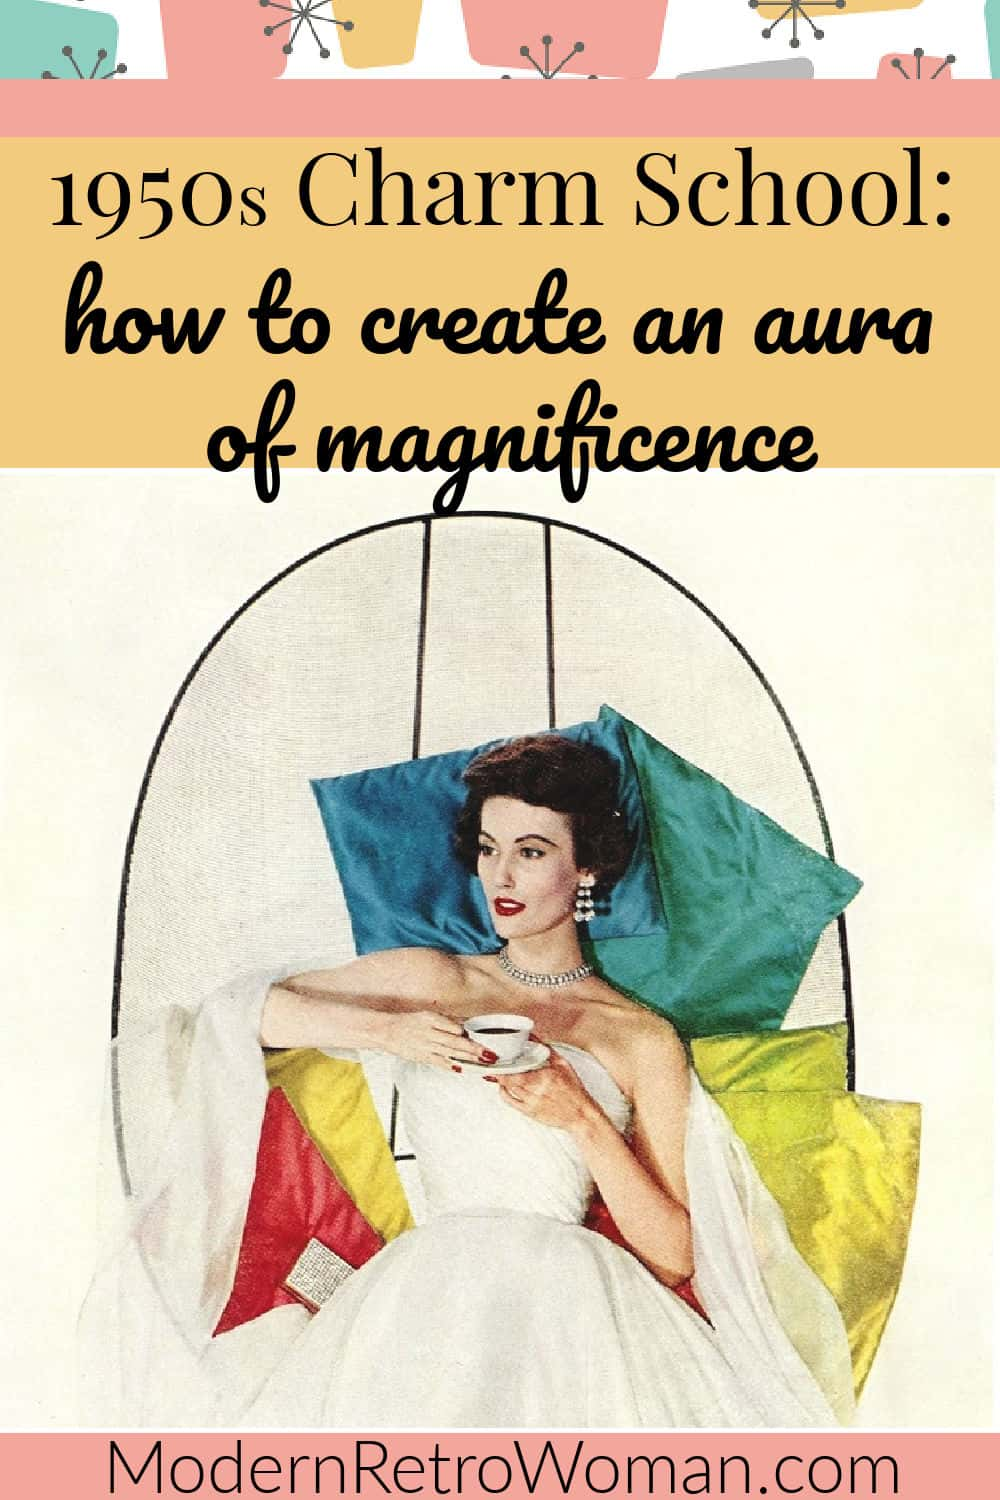 1950s Charm School: Creating An Aura of Magnificence™